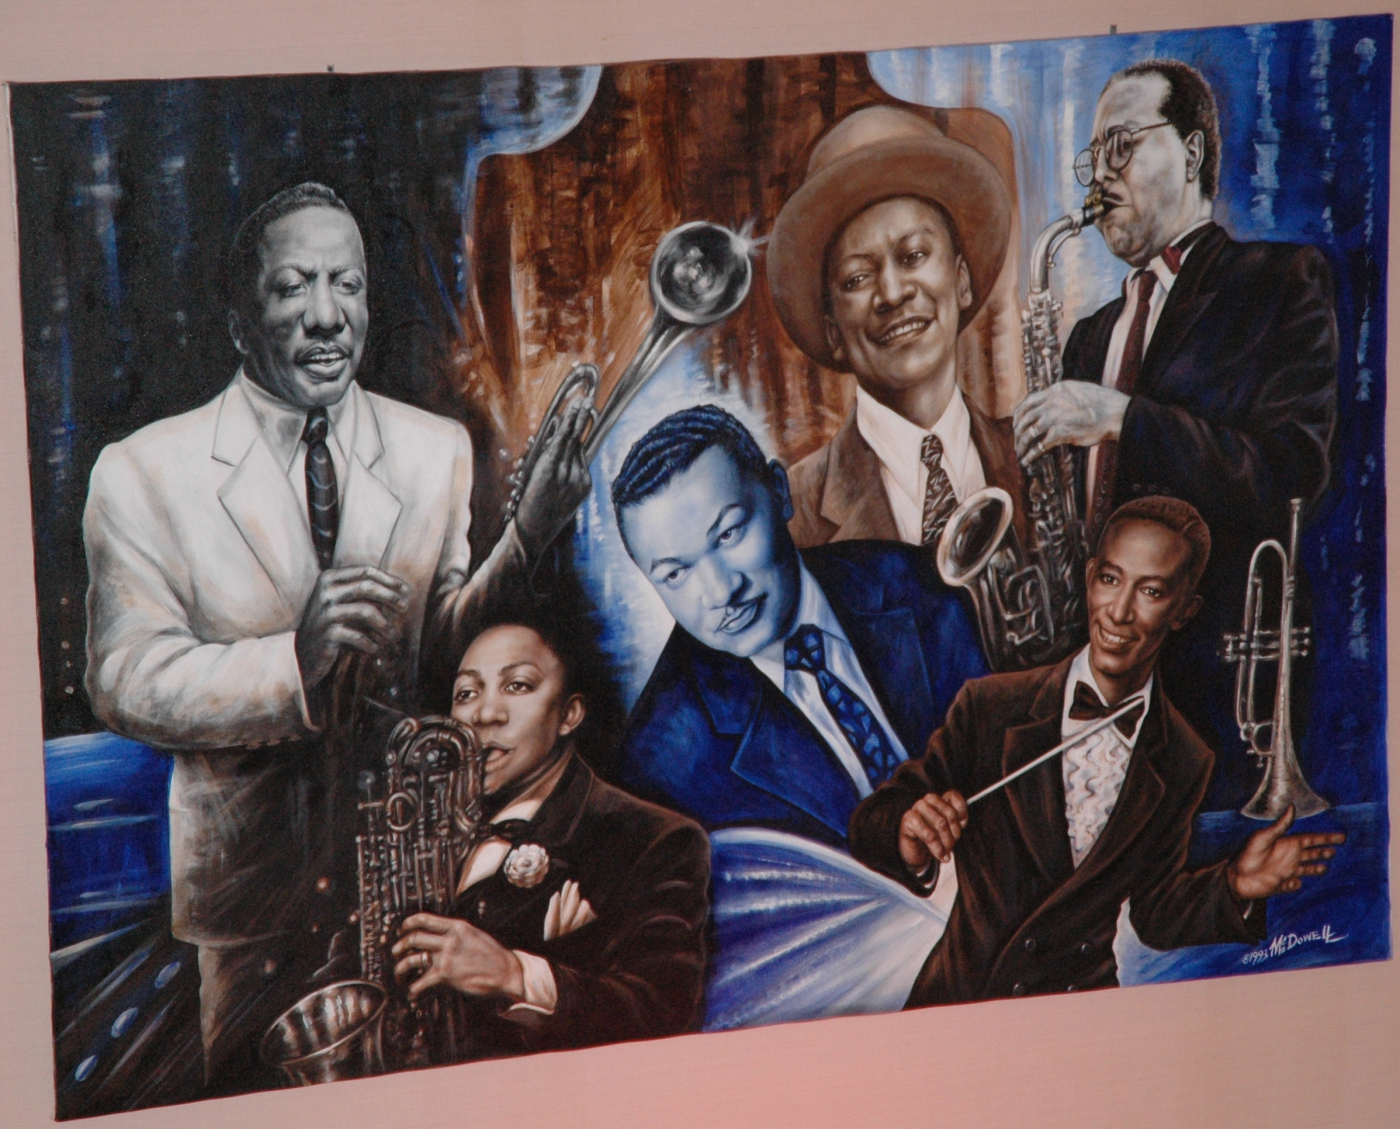 Located two blocks from the city's Civil Rights attractions, the Alabama Jazz Hall of Fame has two floors of jazz memorabilia and free Saturday morning jazz classes.